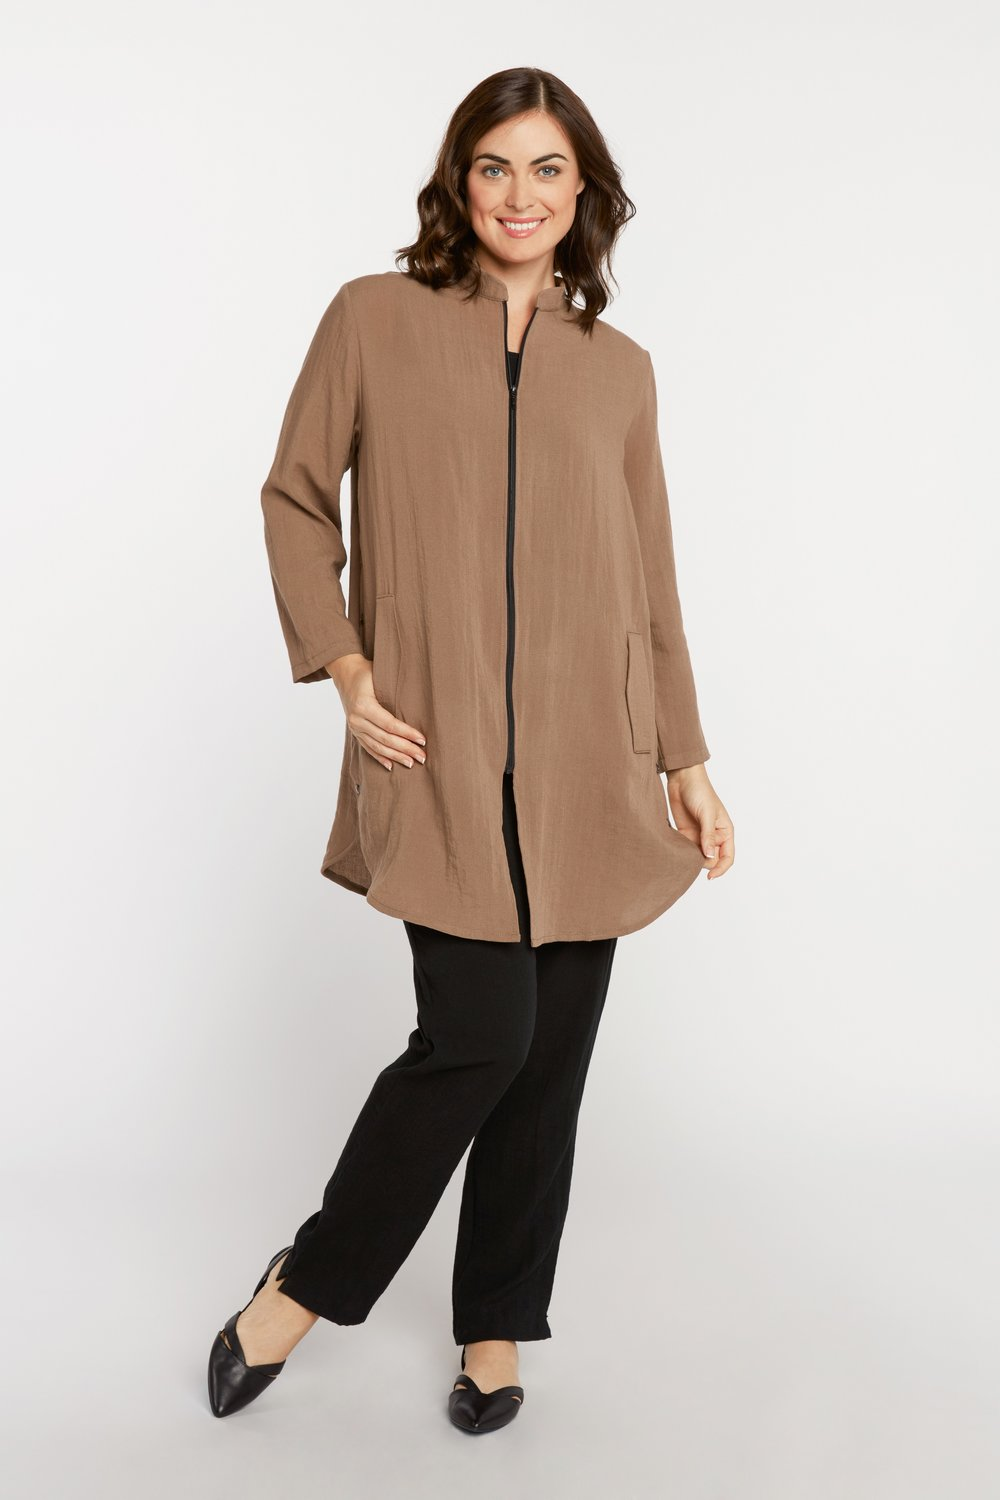 AA218 - Side Button Zippered Tunic    Milk Chocolate - CL8625